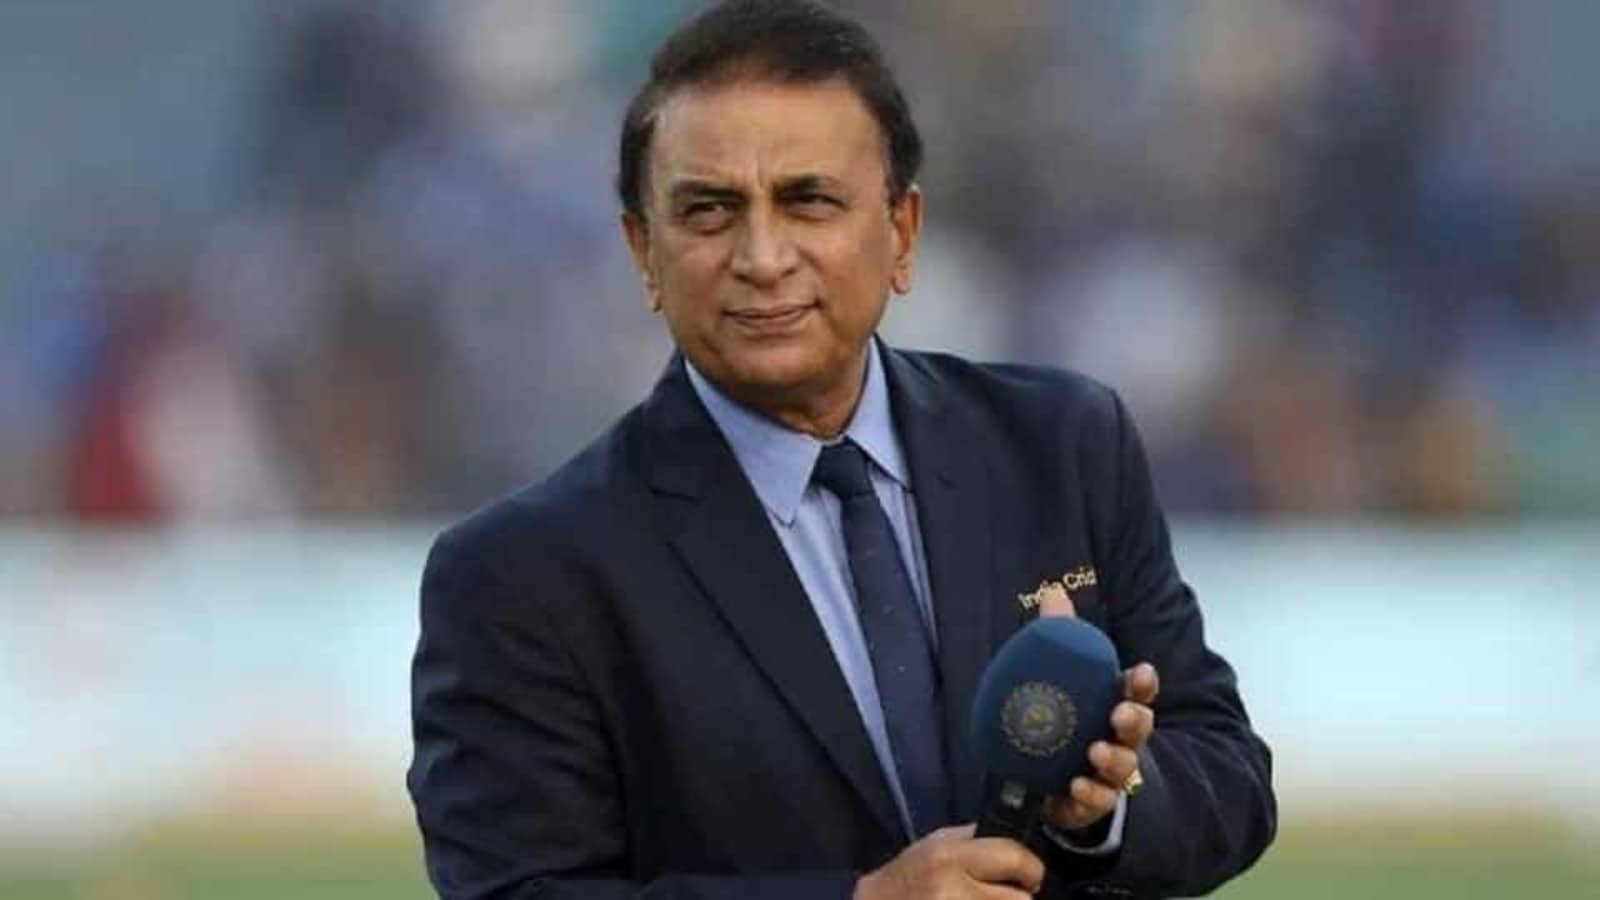 He's not trying to slog every ball': Sunil Gavaskar praises India youngster  for playing 'smart and intelligent cricket'   Cricket - Hindustan Times